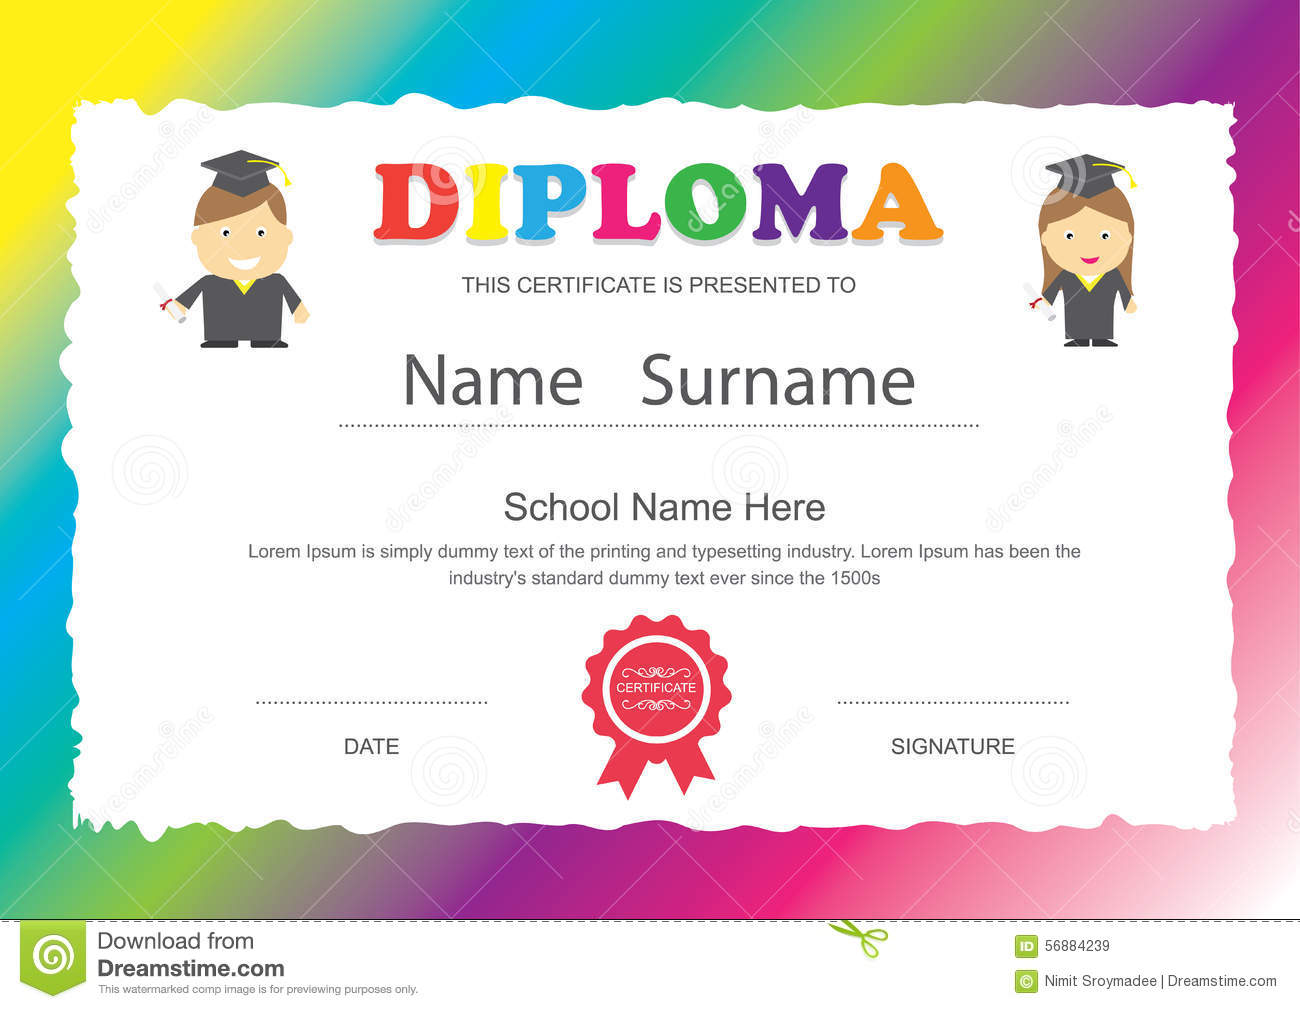 Kids diploma preschool certificate elementary school design temp preschool kids elementary school diploma certificate design royalty free stock images yadclub Image collections